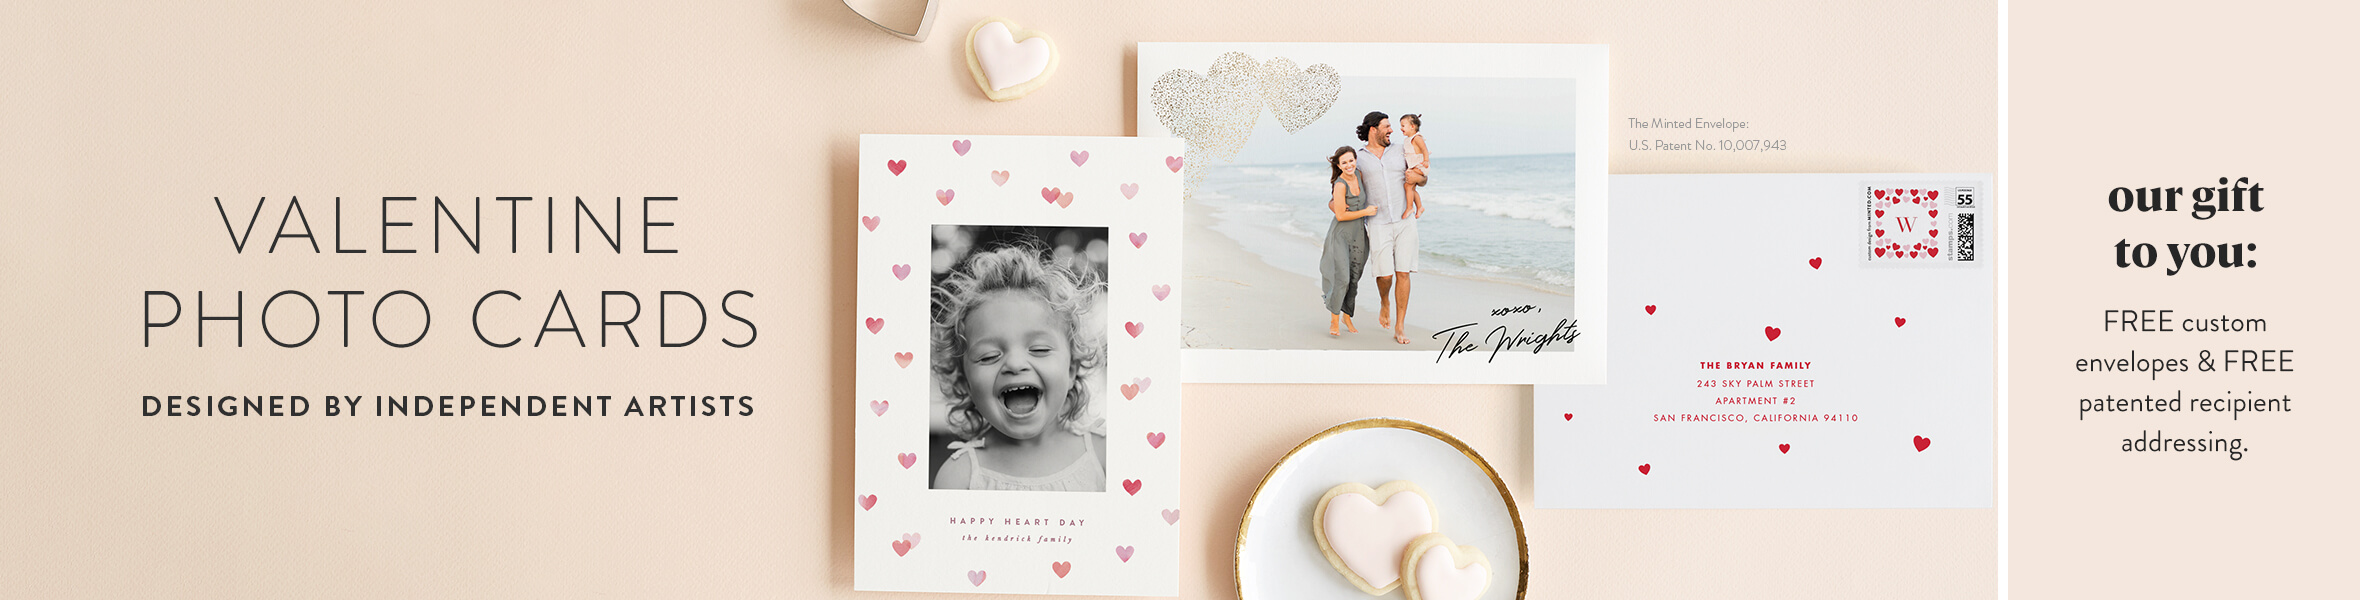 Valentines Photo Cards